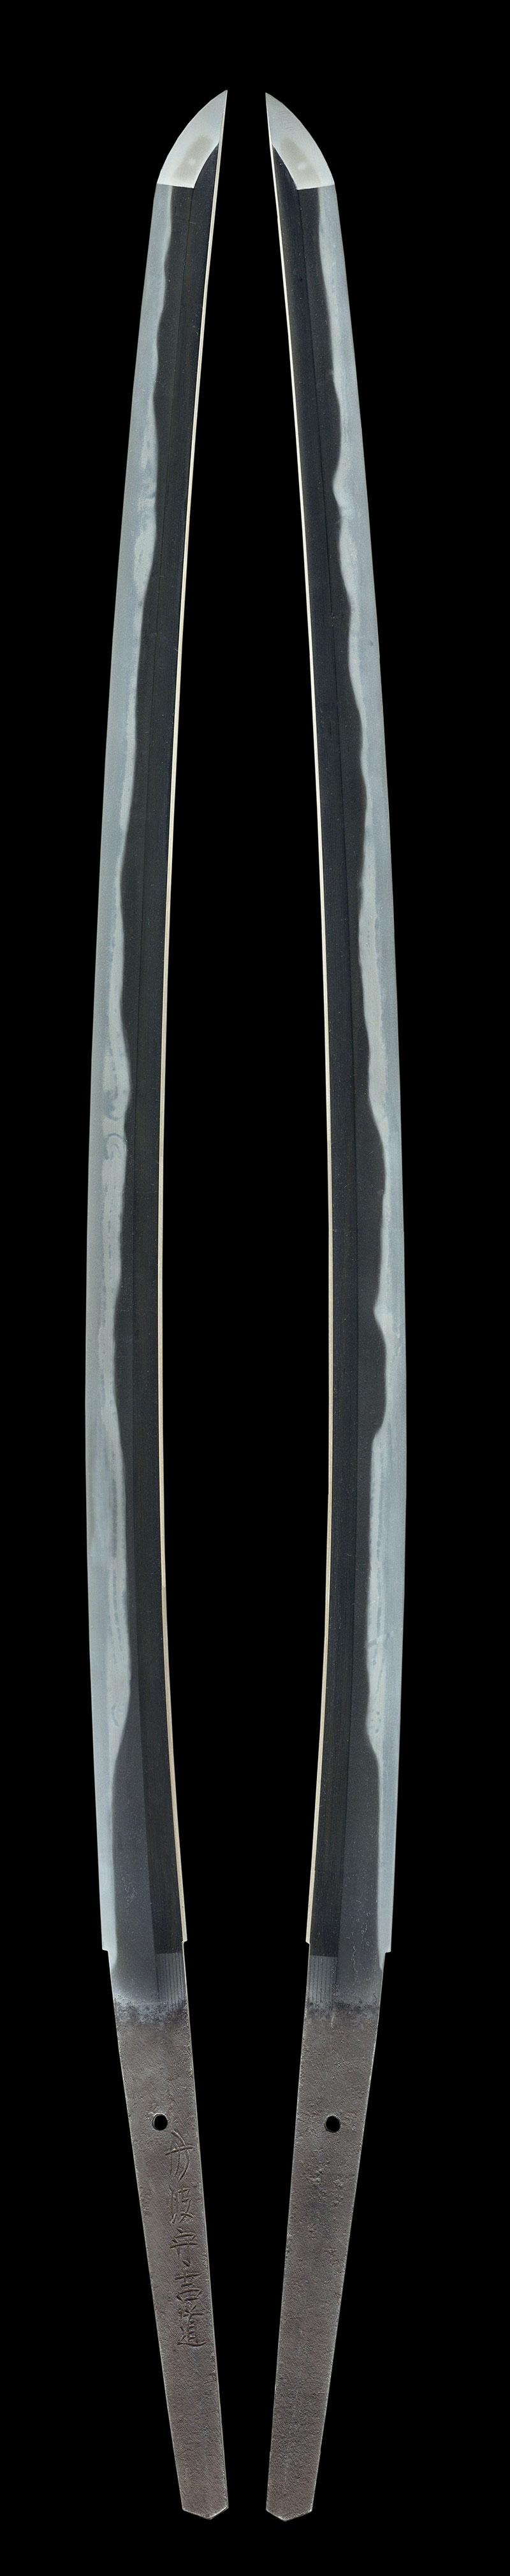 Tanba Kami Yoshimichi Osaka 3rd generation Blade length 46 4 cm or 18 26 inches Shape The blade is rather wide and thick with deeper sori …